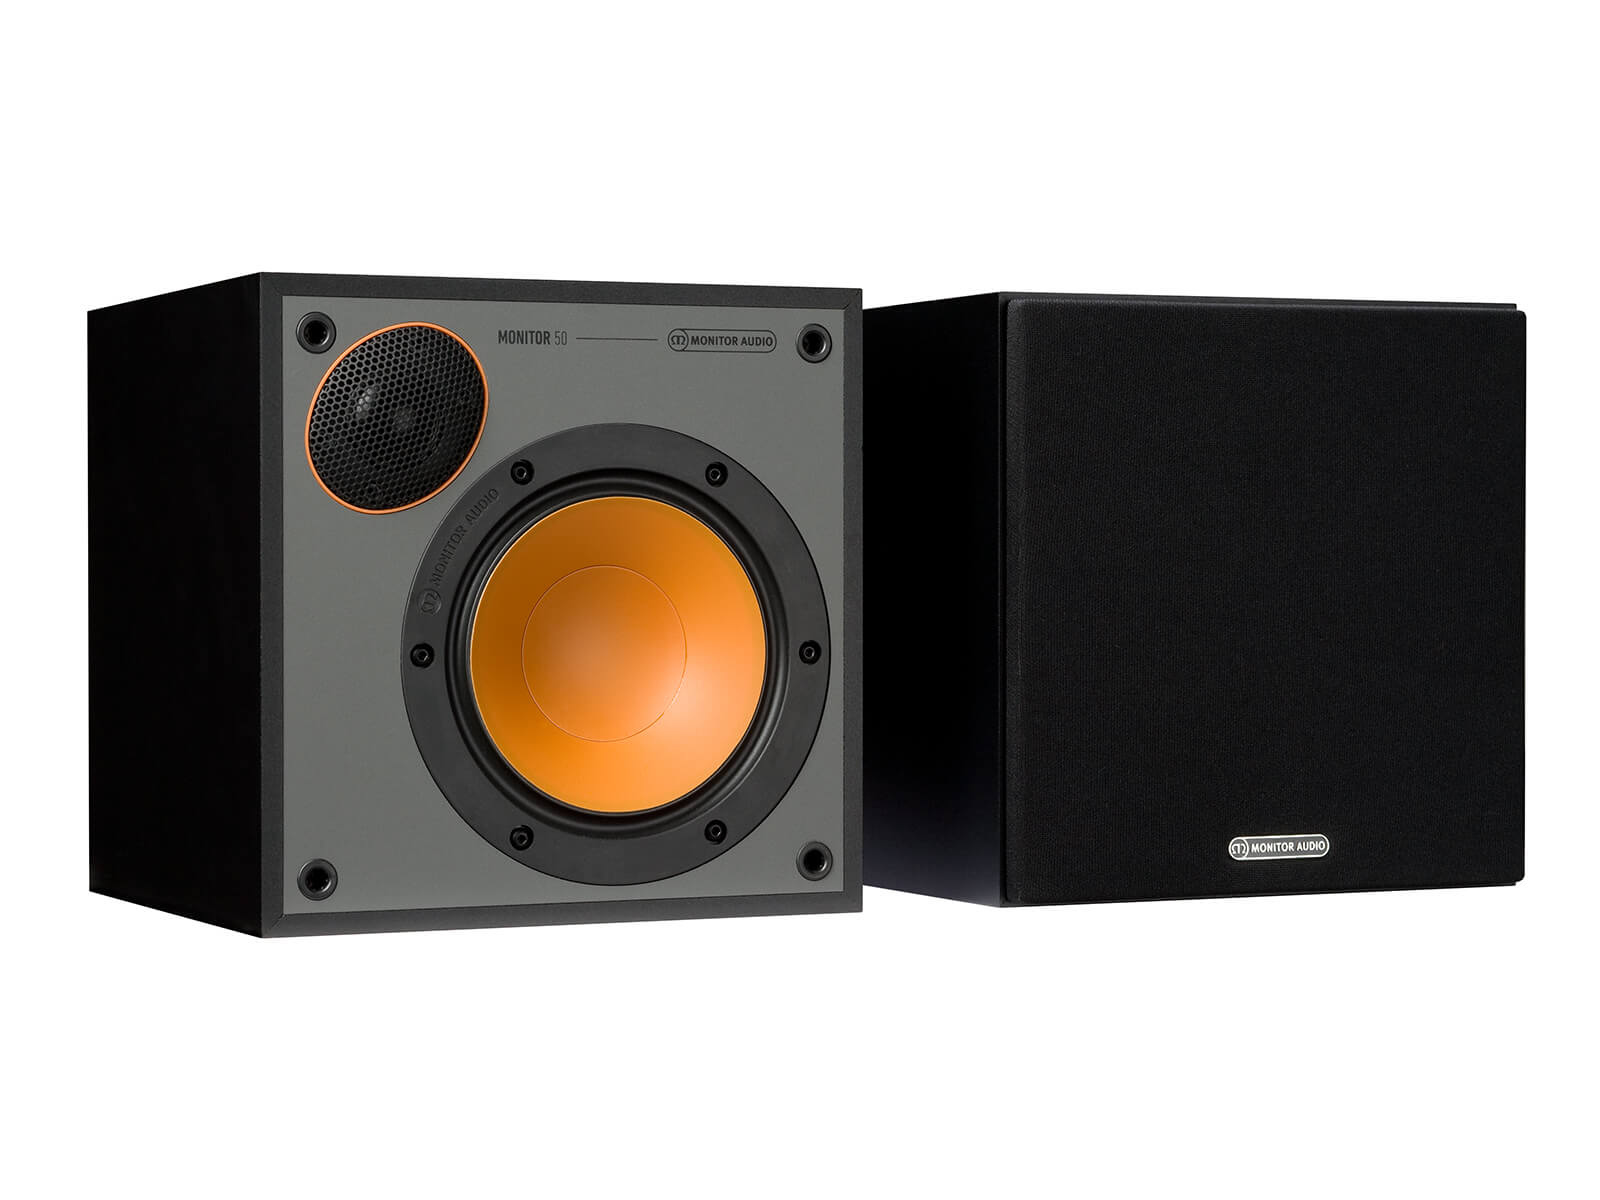 Monitor 50, bookshelf speakers, with and without grille in a black finish.